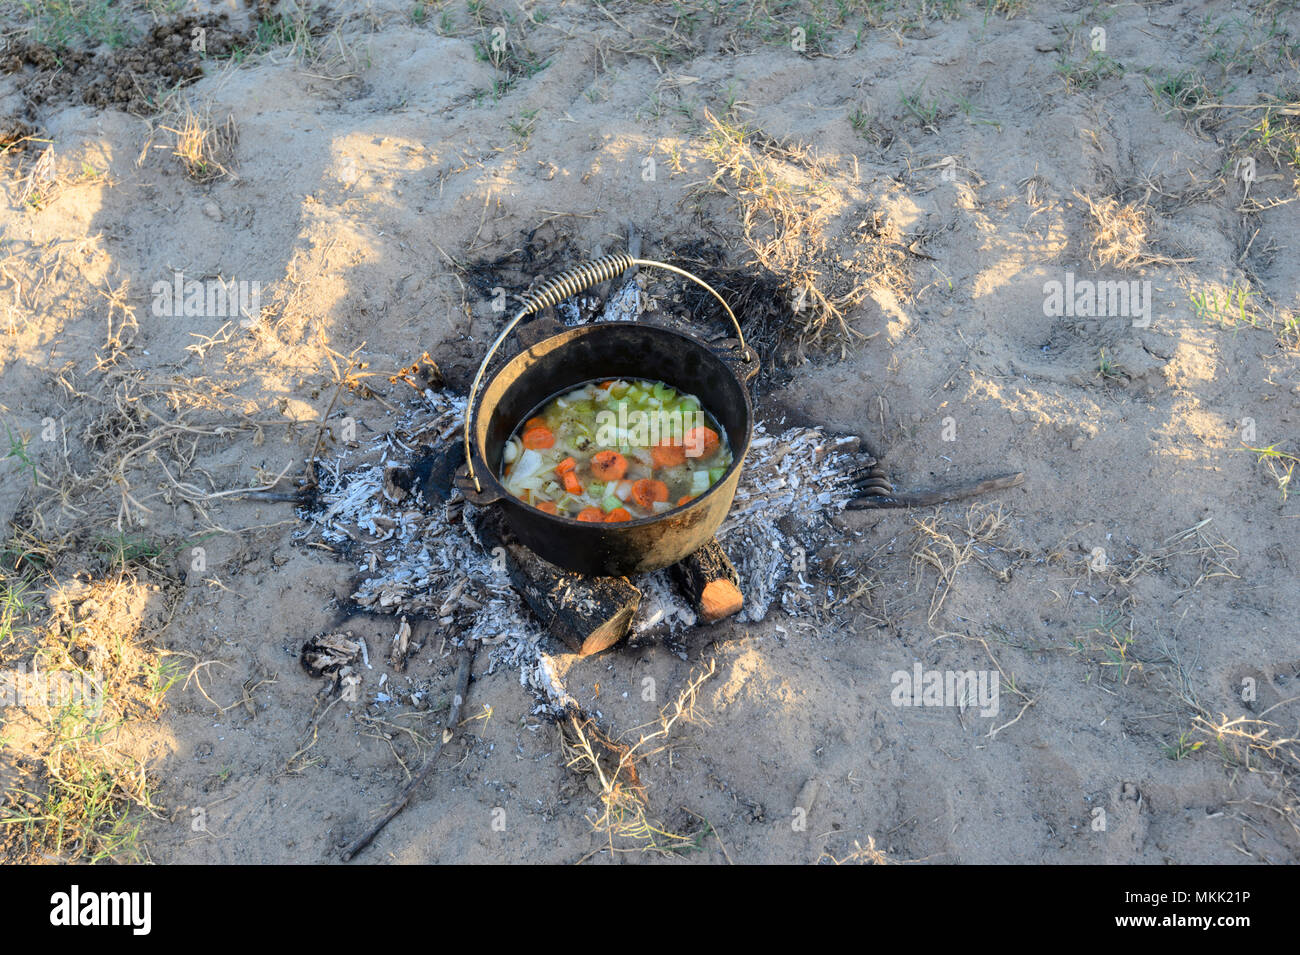 Vegetable stew being cooked in a camp oven while bush camping, Far North Queensland, FNQ, QLD, Australia Stock Photo